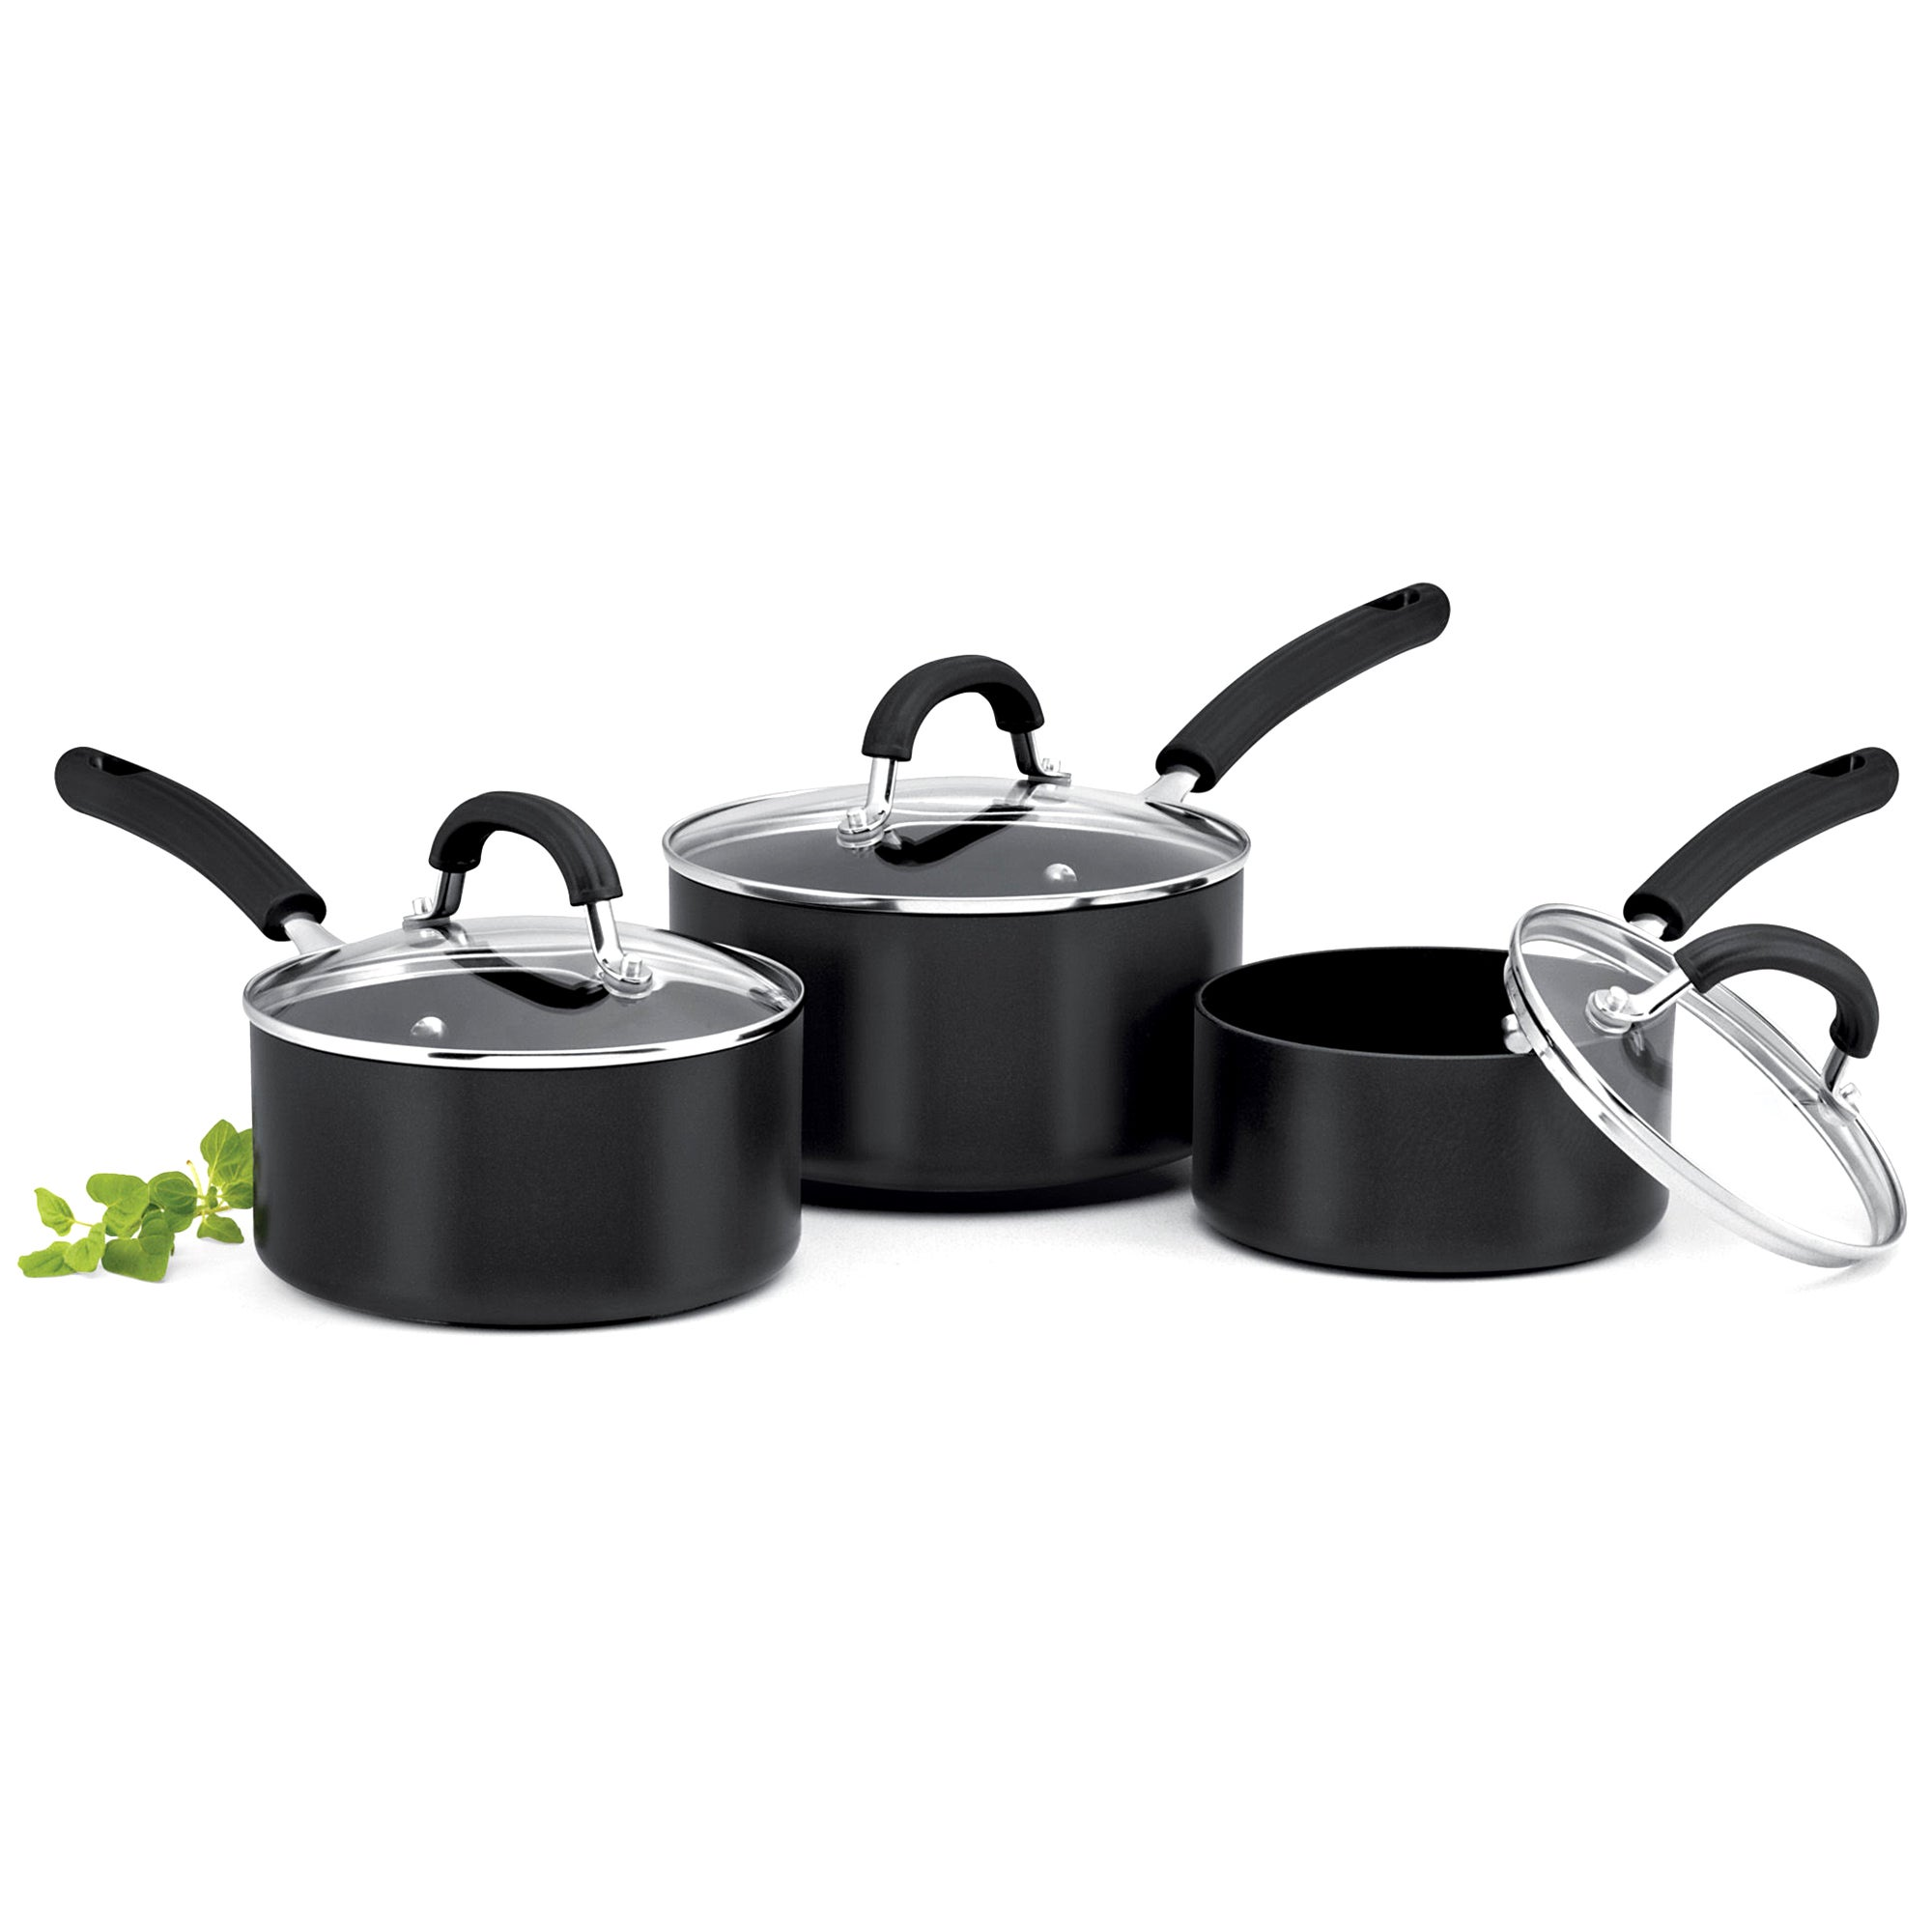 Circulon Origins Set of 3 Hard Anodised Aluminium Saucepans